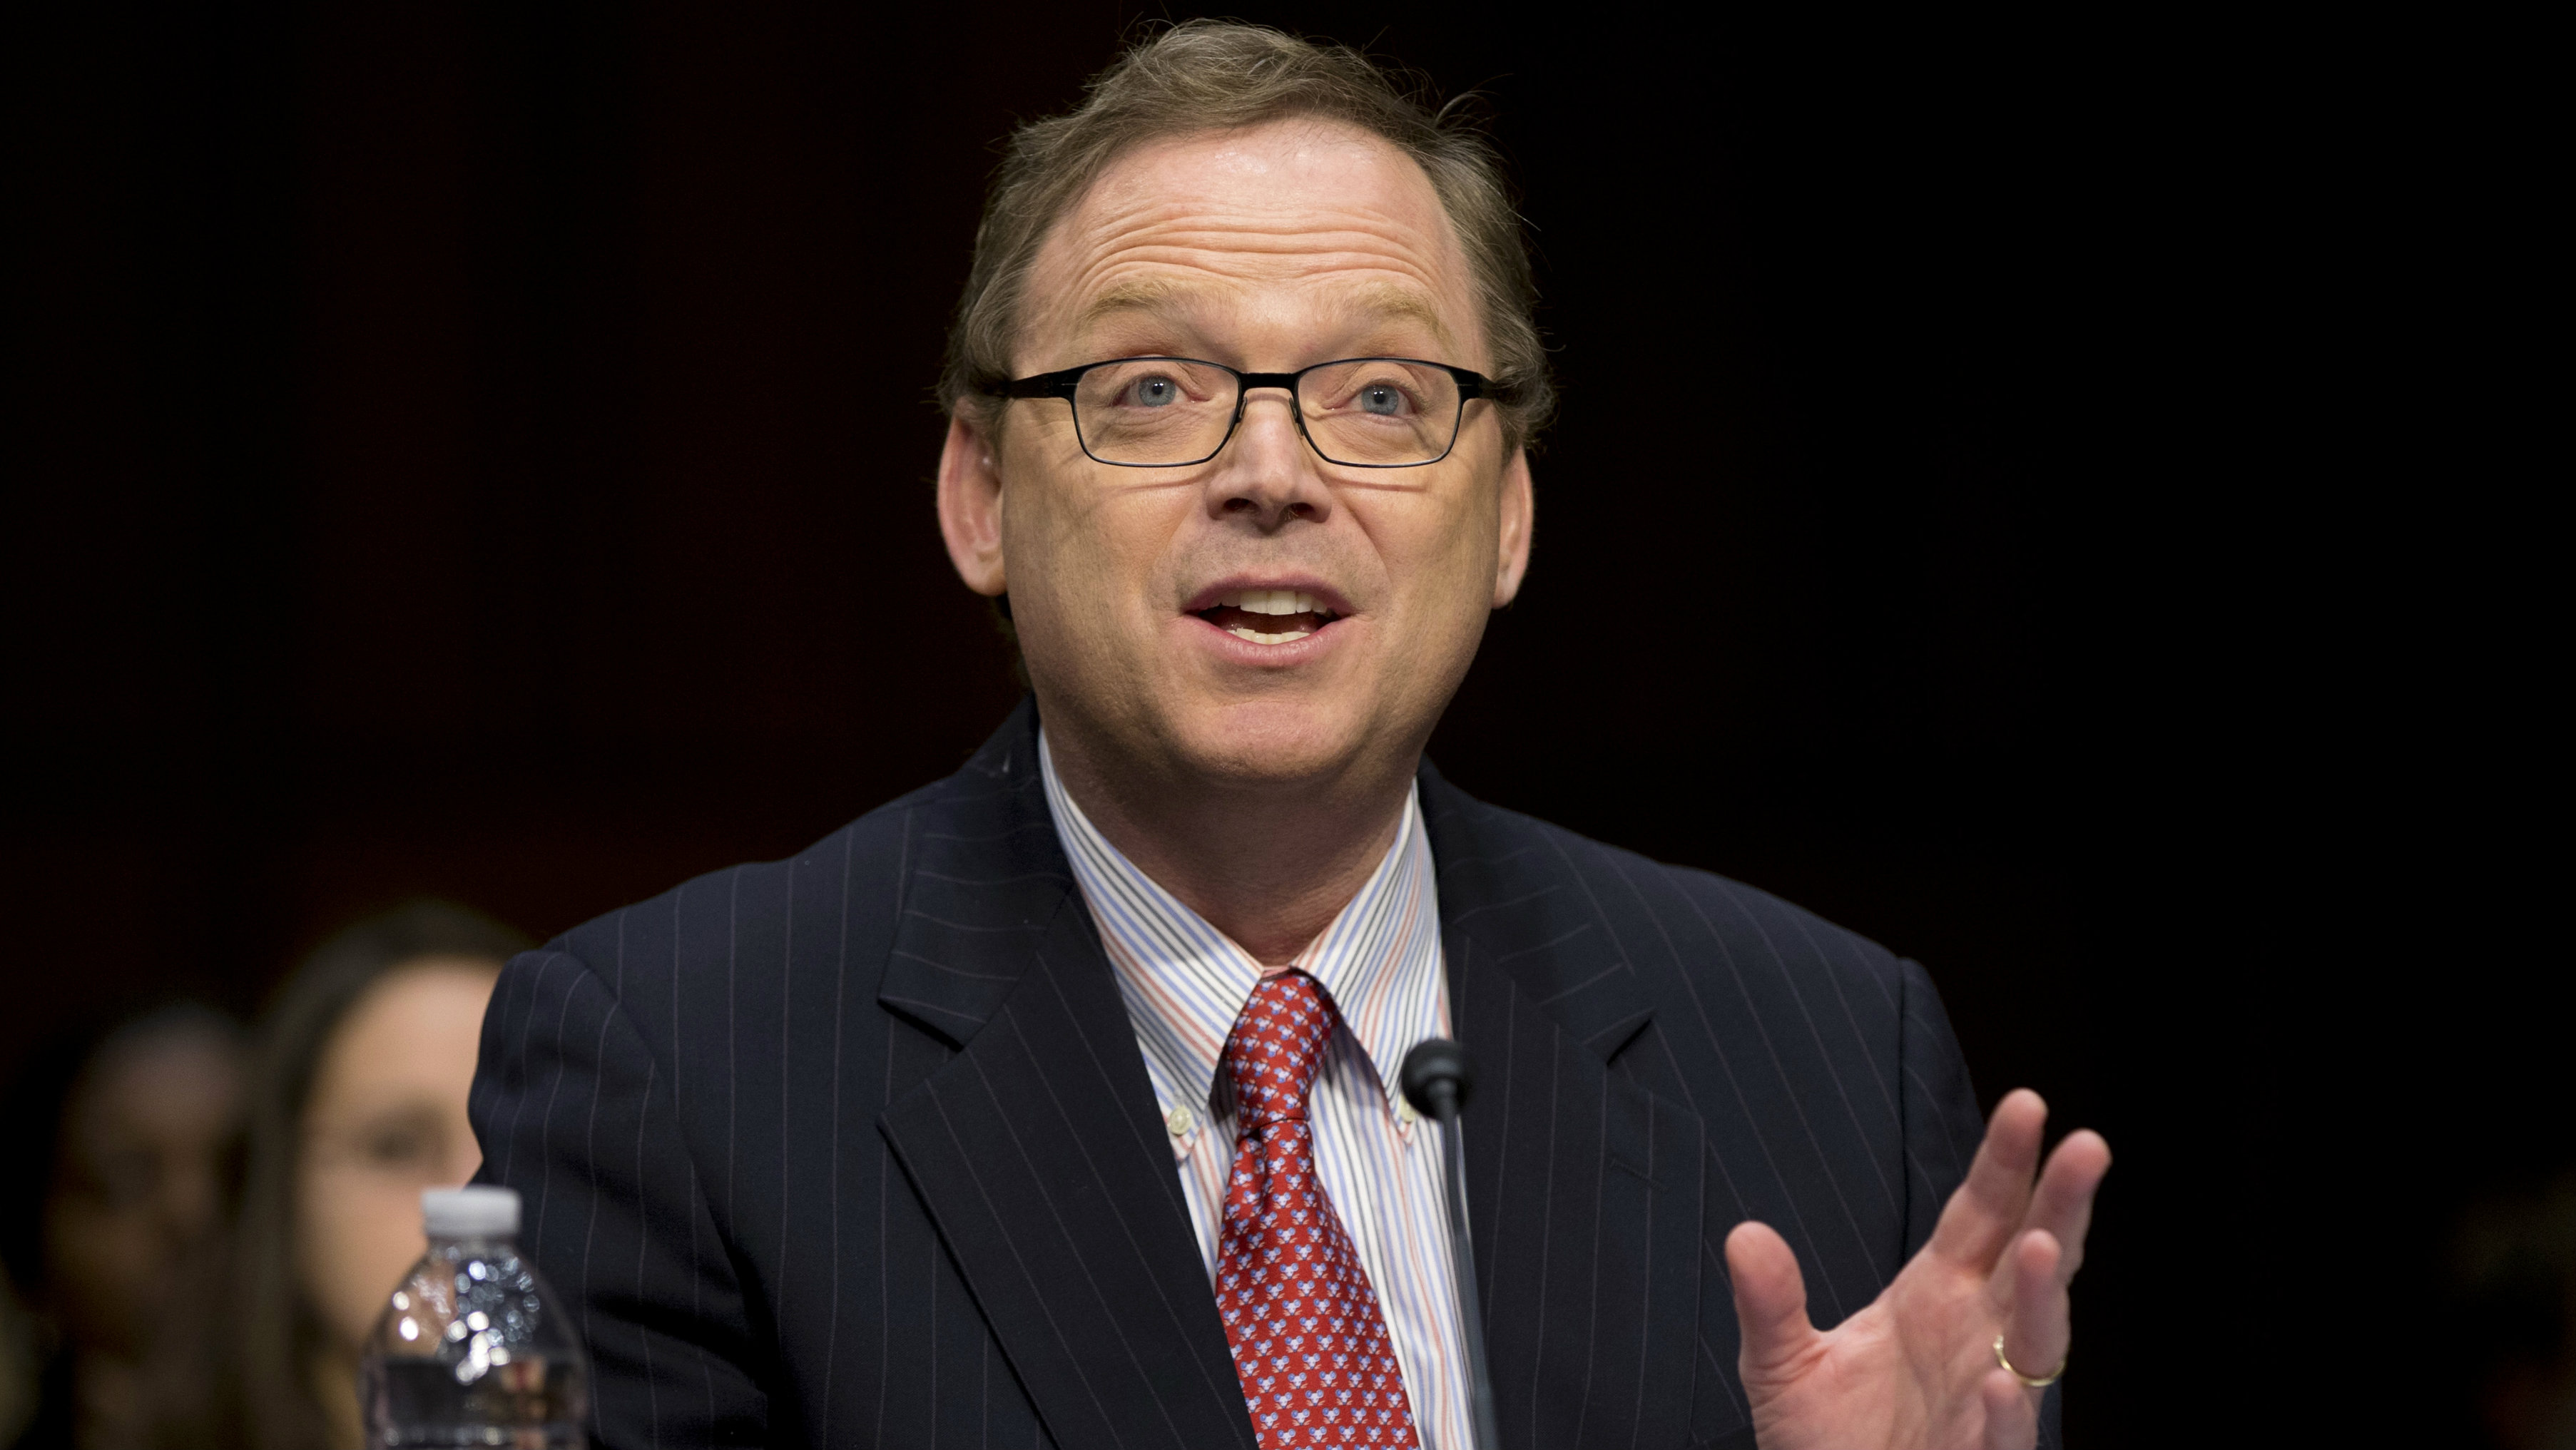 Kevin Hassett, senior fellow and director of Economic Policy at the American Enterprise Institute (AEI), gestures as he testifies on Capitol Hill in Washington.